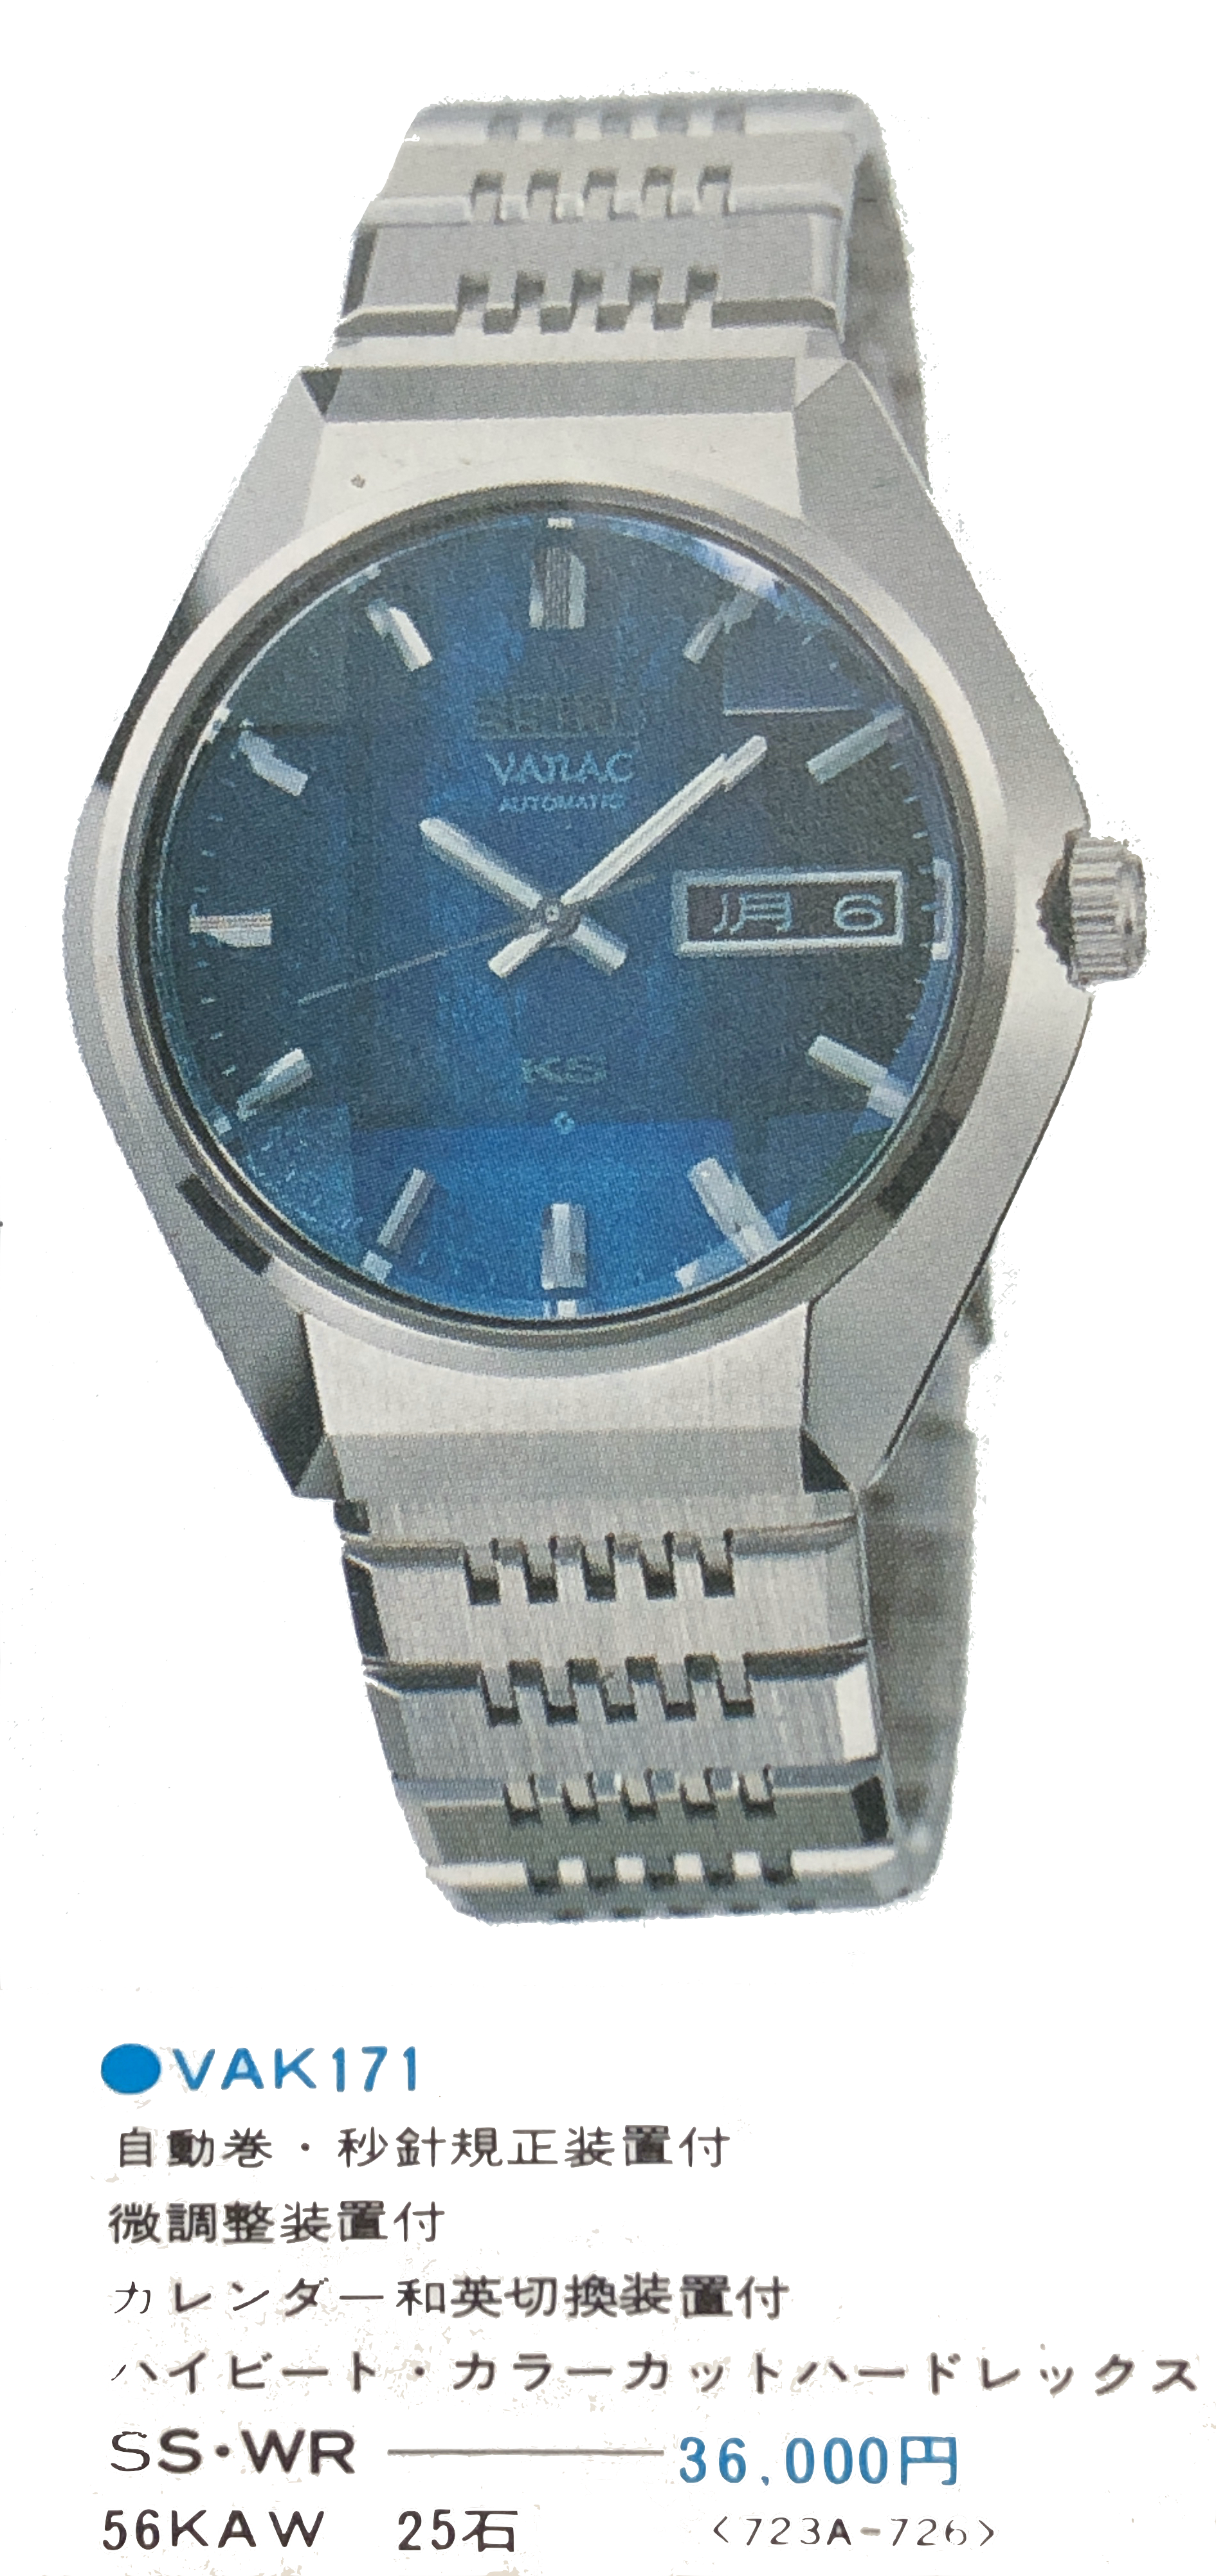 King Seiko Vanac 5626-723A   (Reserved)